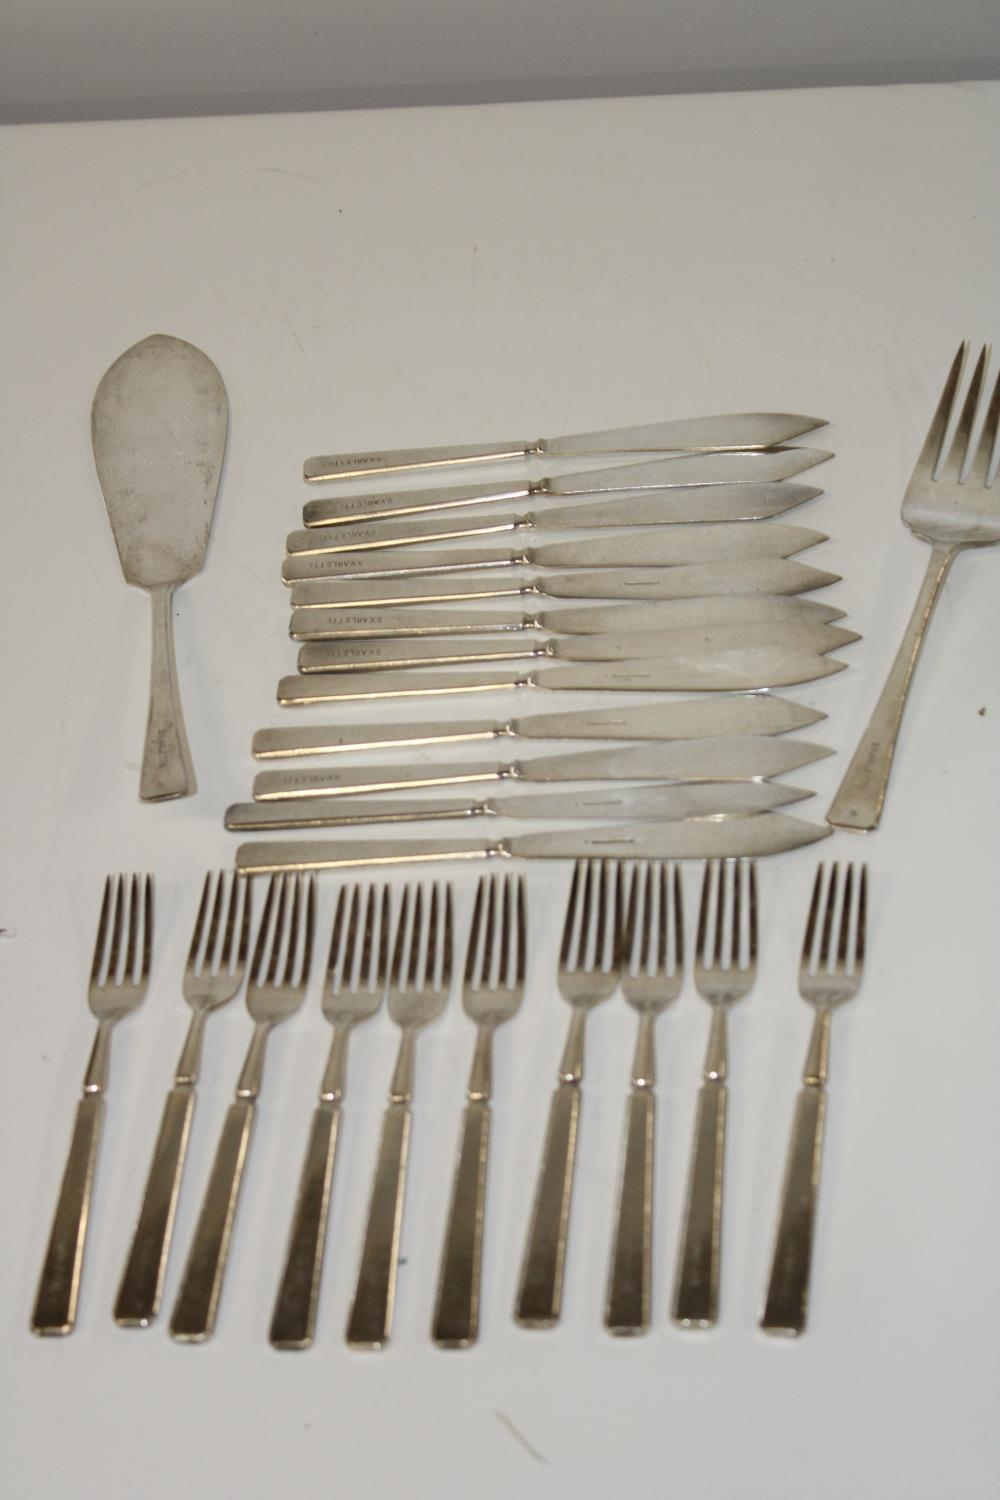 A selection of silver plated cutlery produced for the steam yacht Arlette launched in the 1930's.